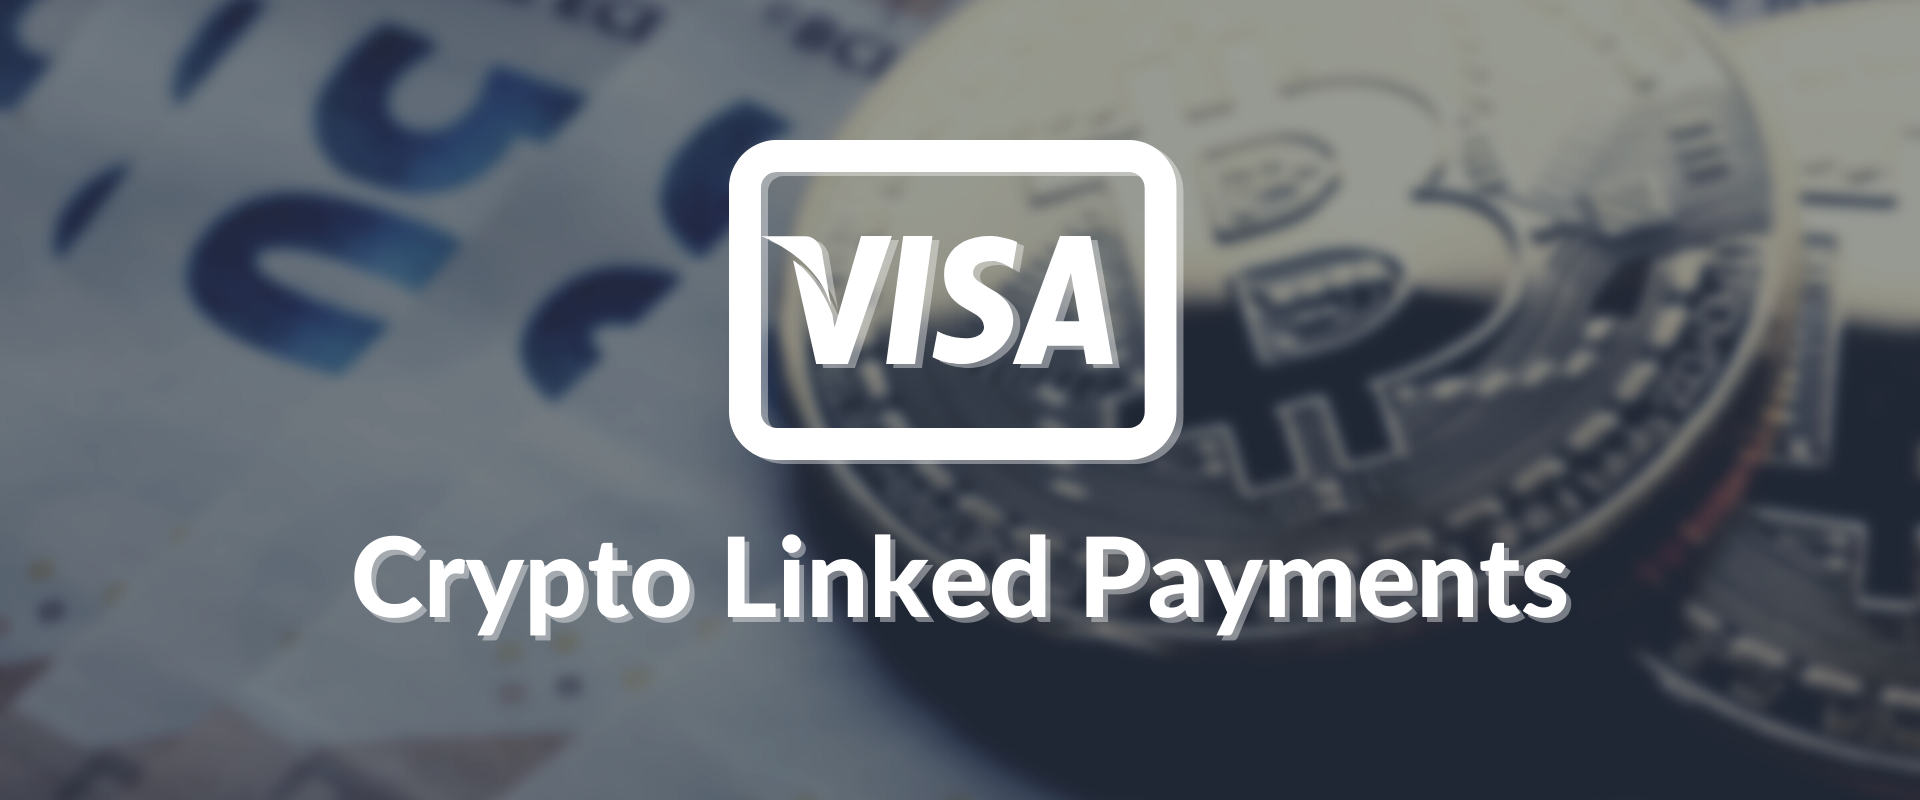 VISA Crypto Linked Payments.png